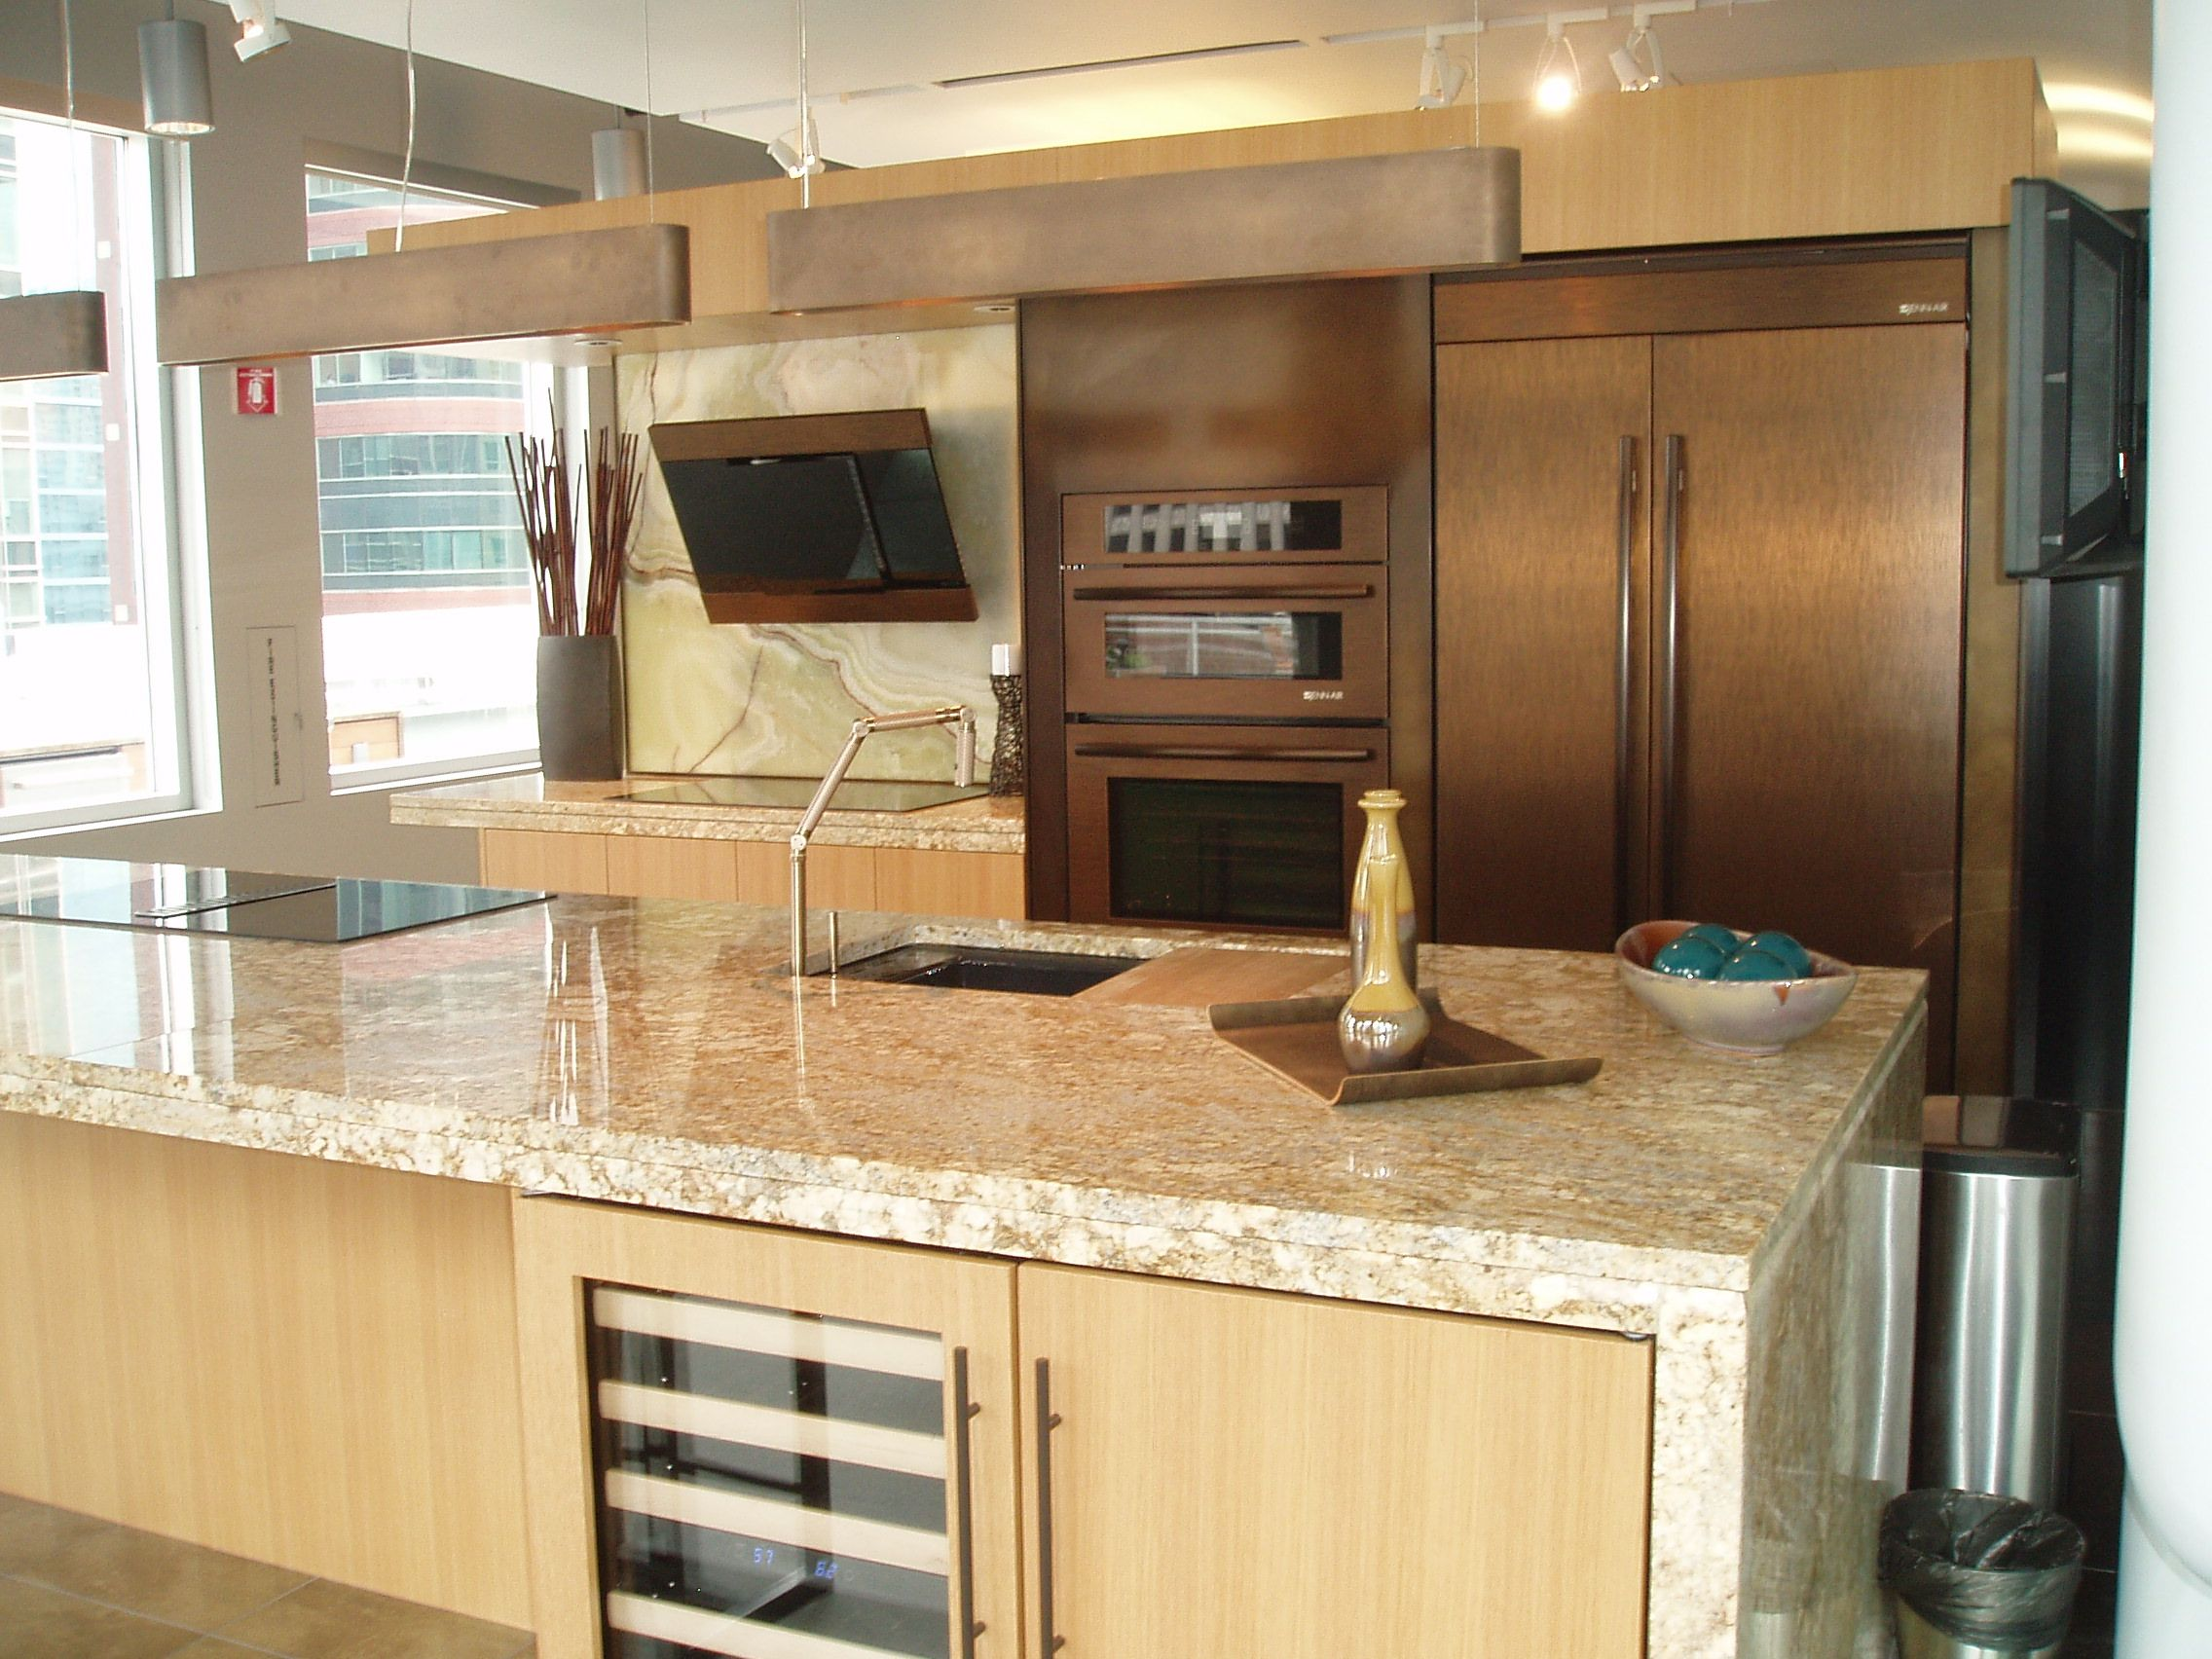 where to buy bronze appliances the beautiful warm finish of the jenn air oiled bronze on kitchen appliances id=64120